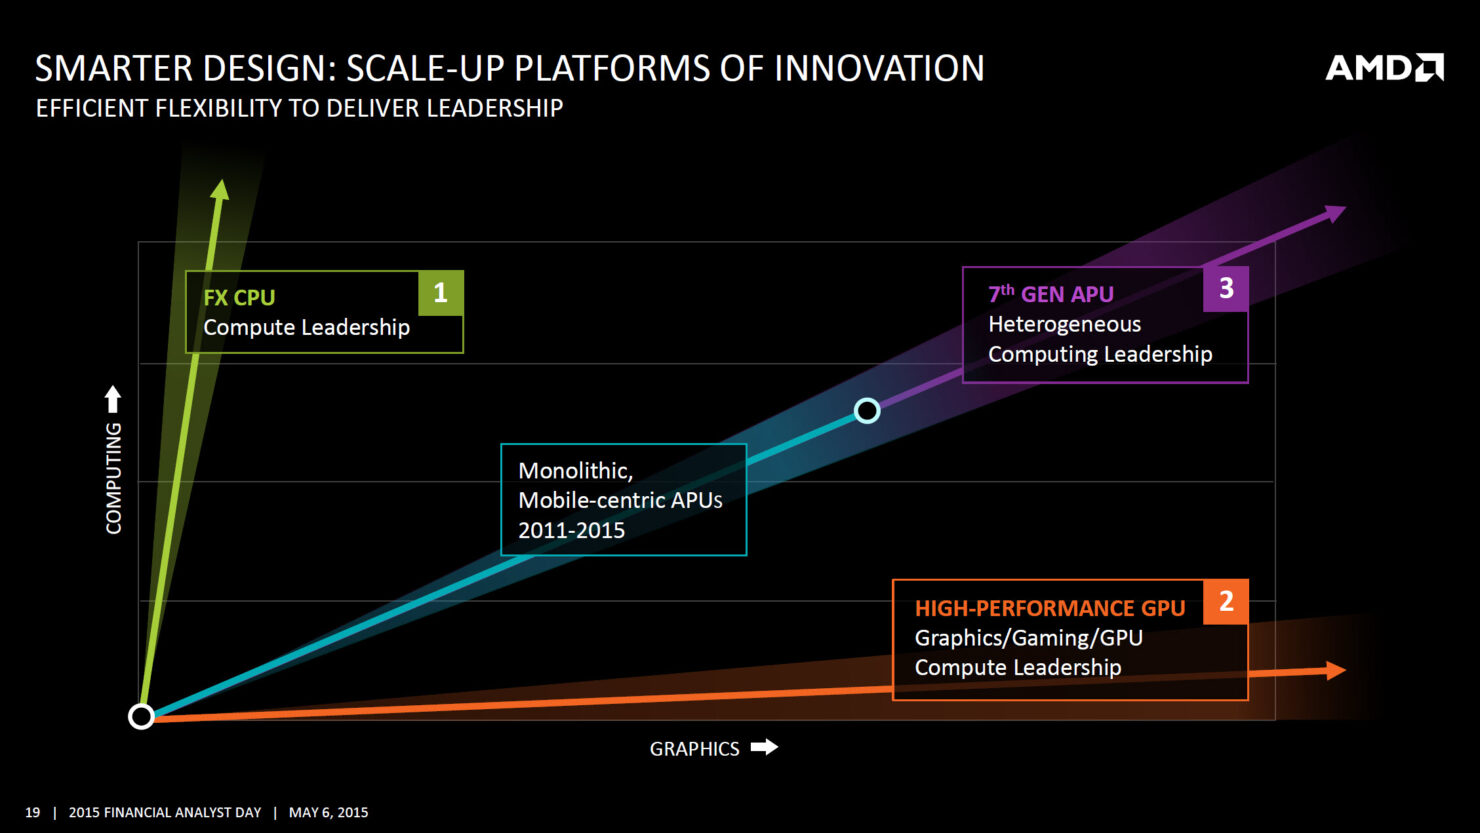 amd-scale-up-2016-product-performance-2